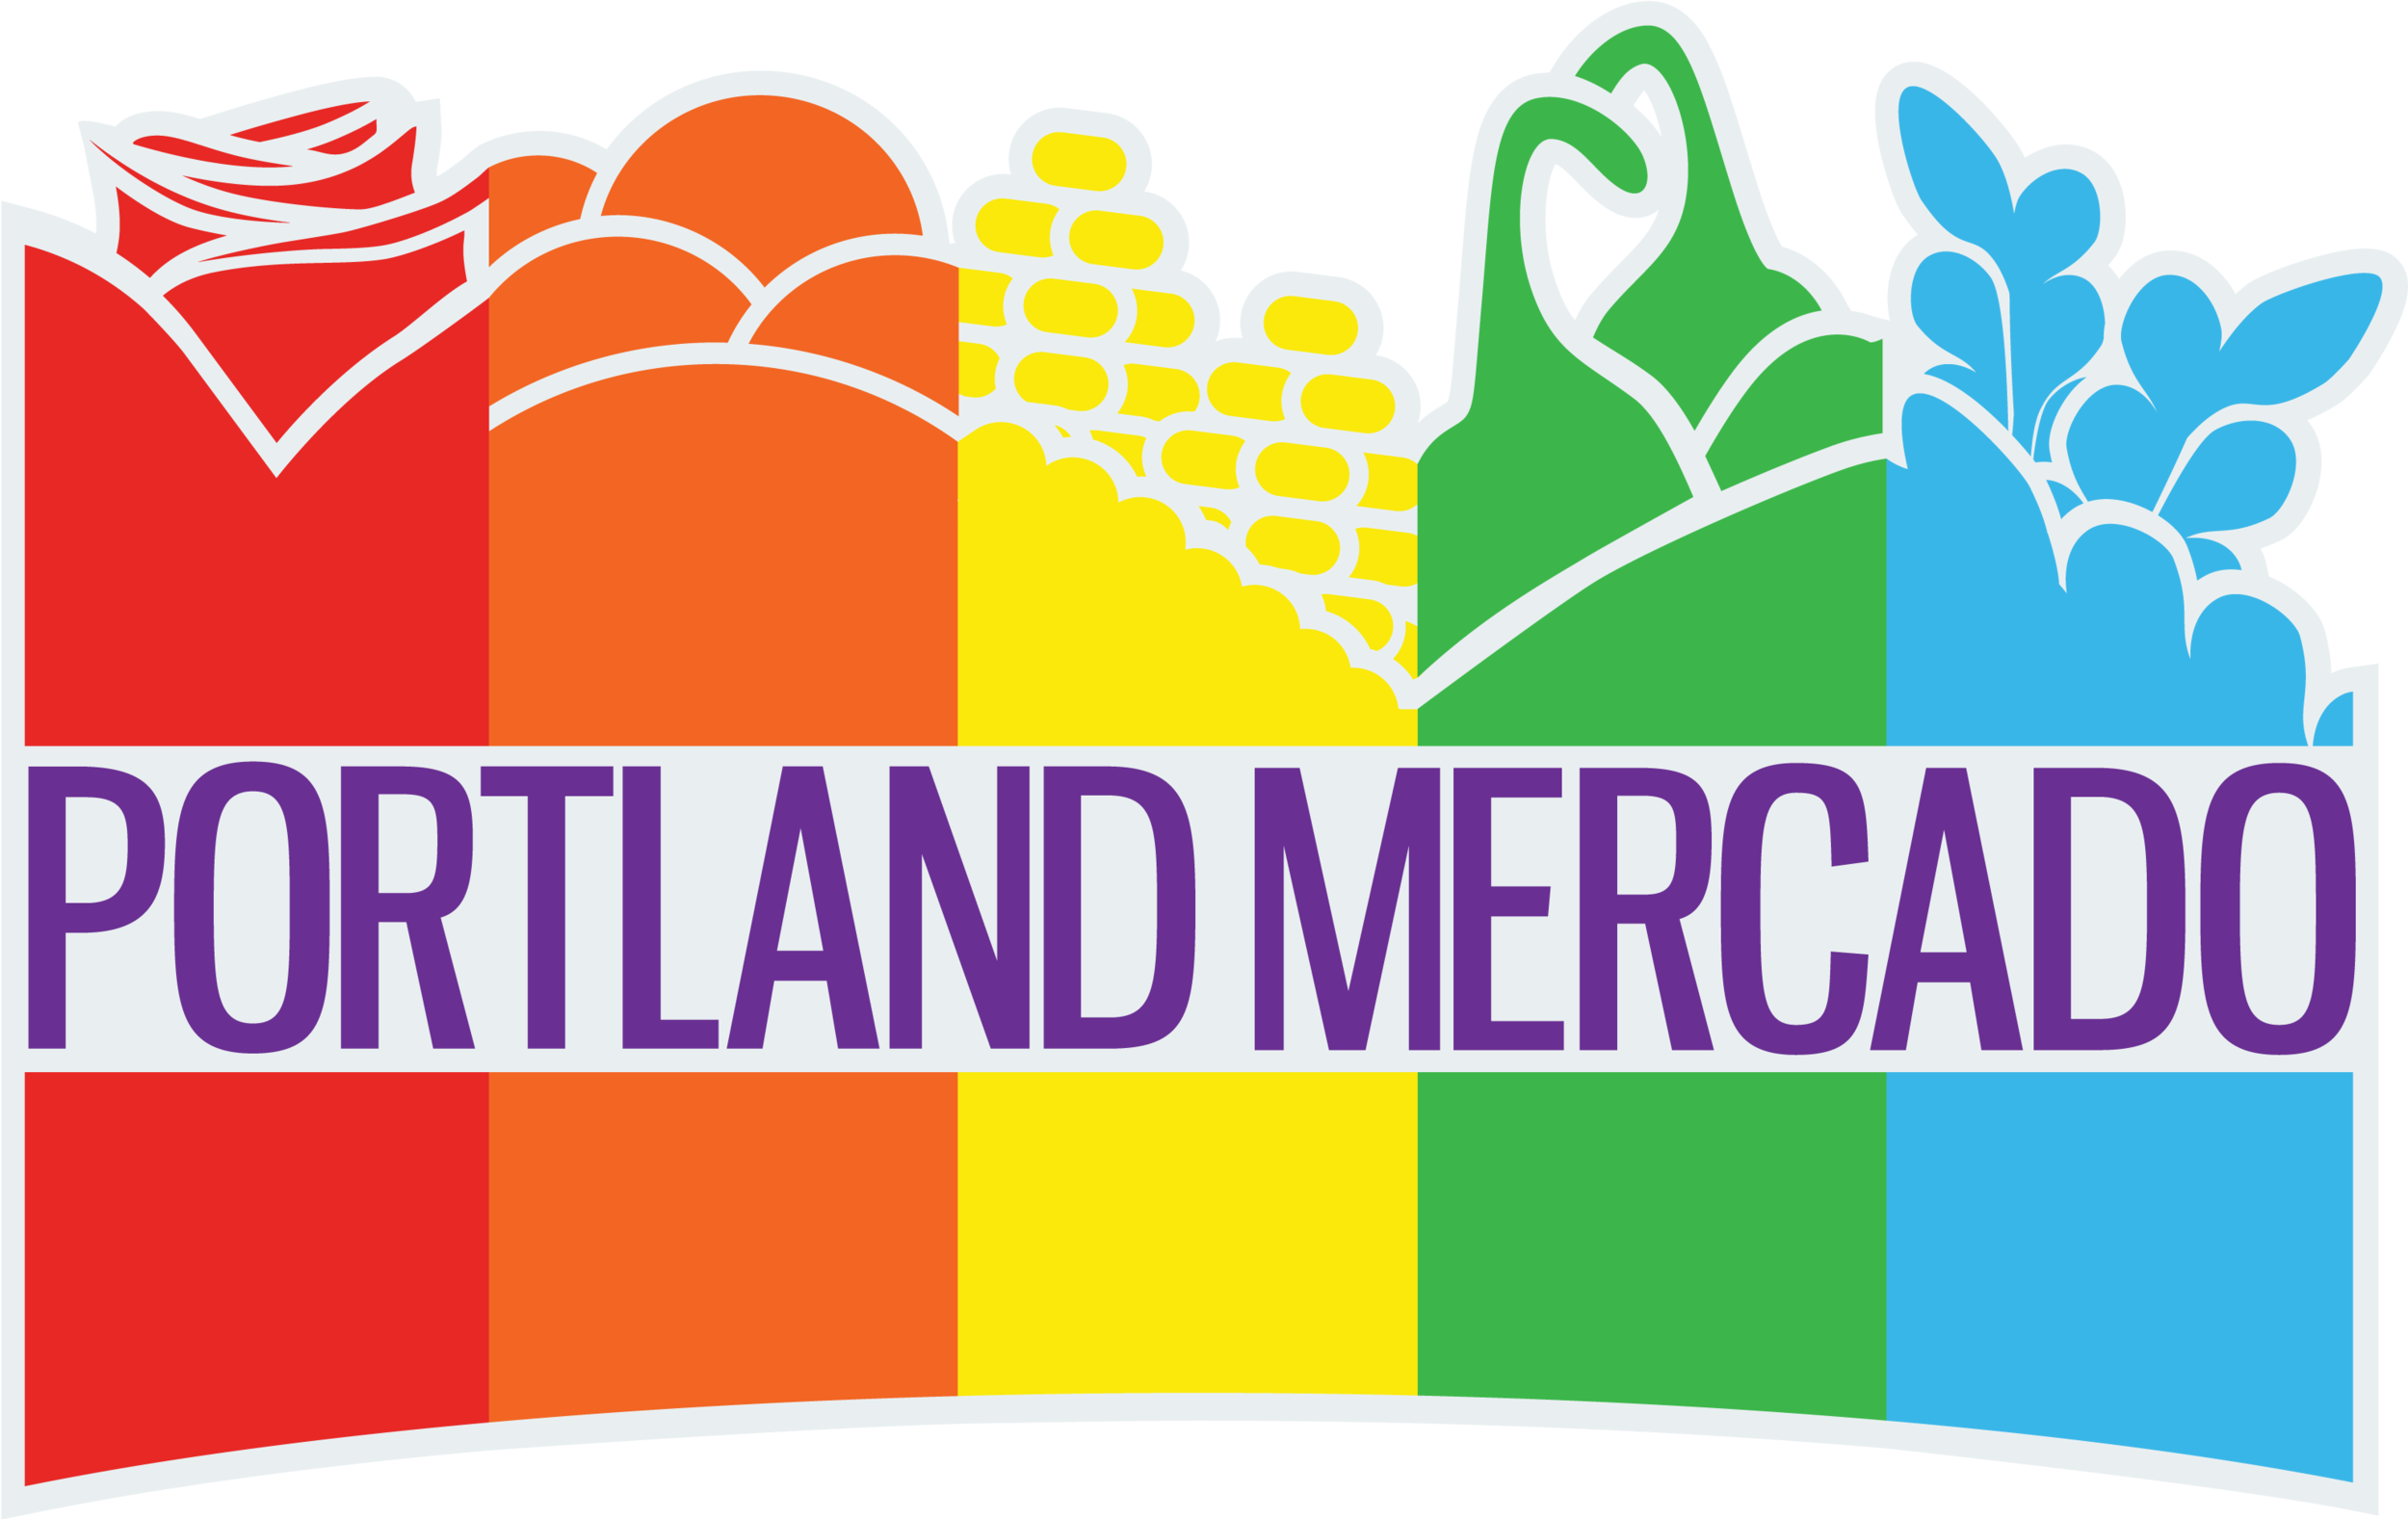 Portland-Mercado-final - Copy.png